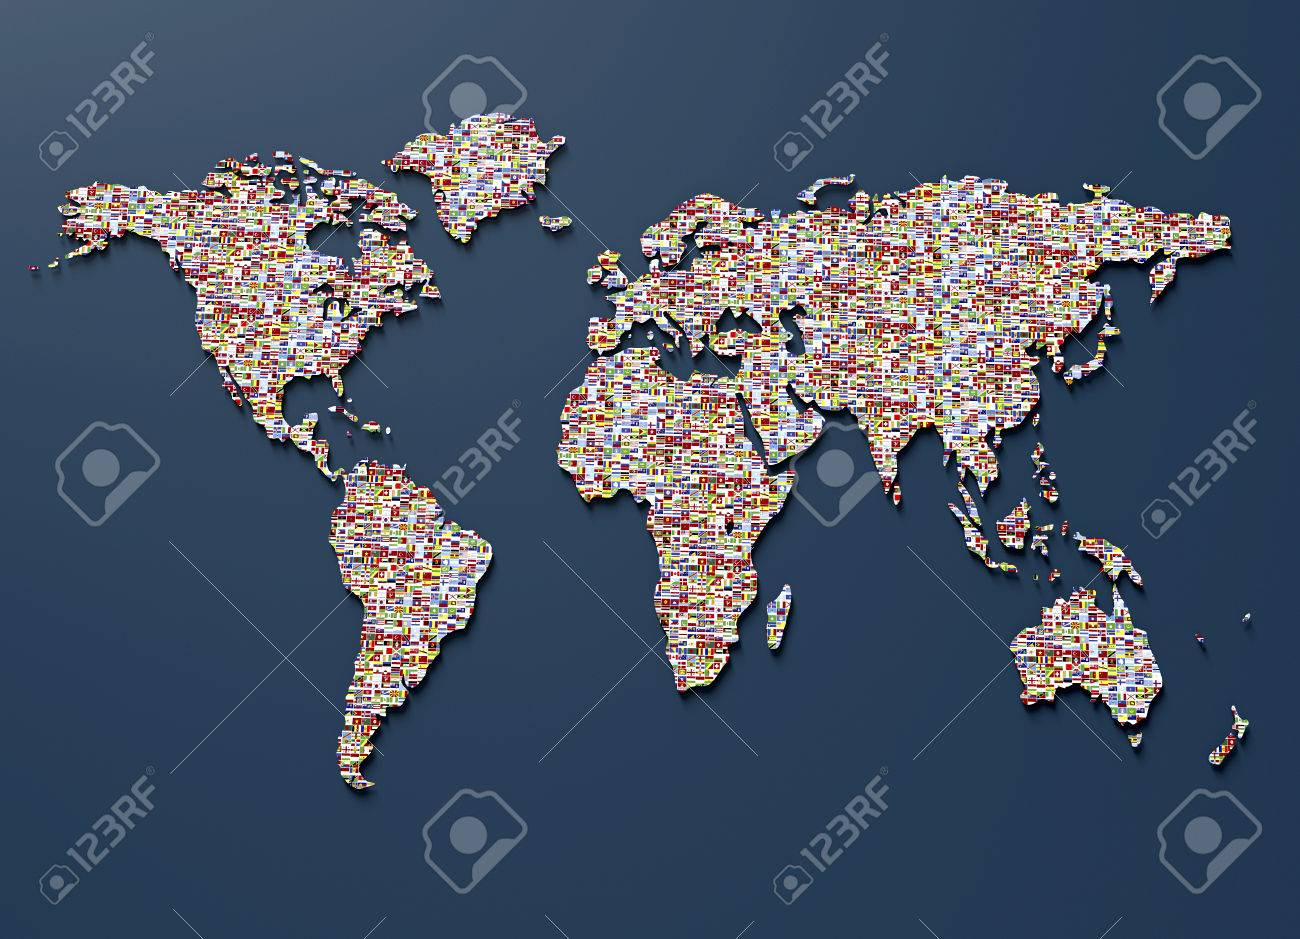 Symbol of geopolitics the world map made out of country flags stock stock photo symbol of geopolitics the world map made out of country flags gumiabroncs Images